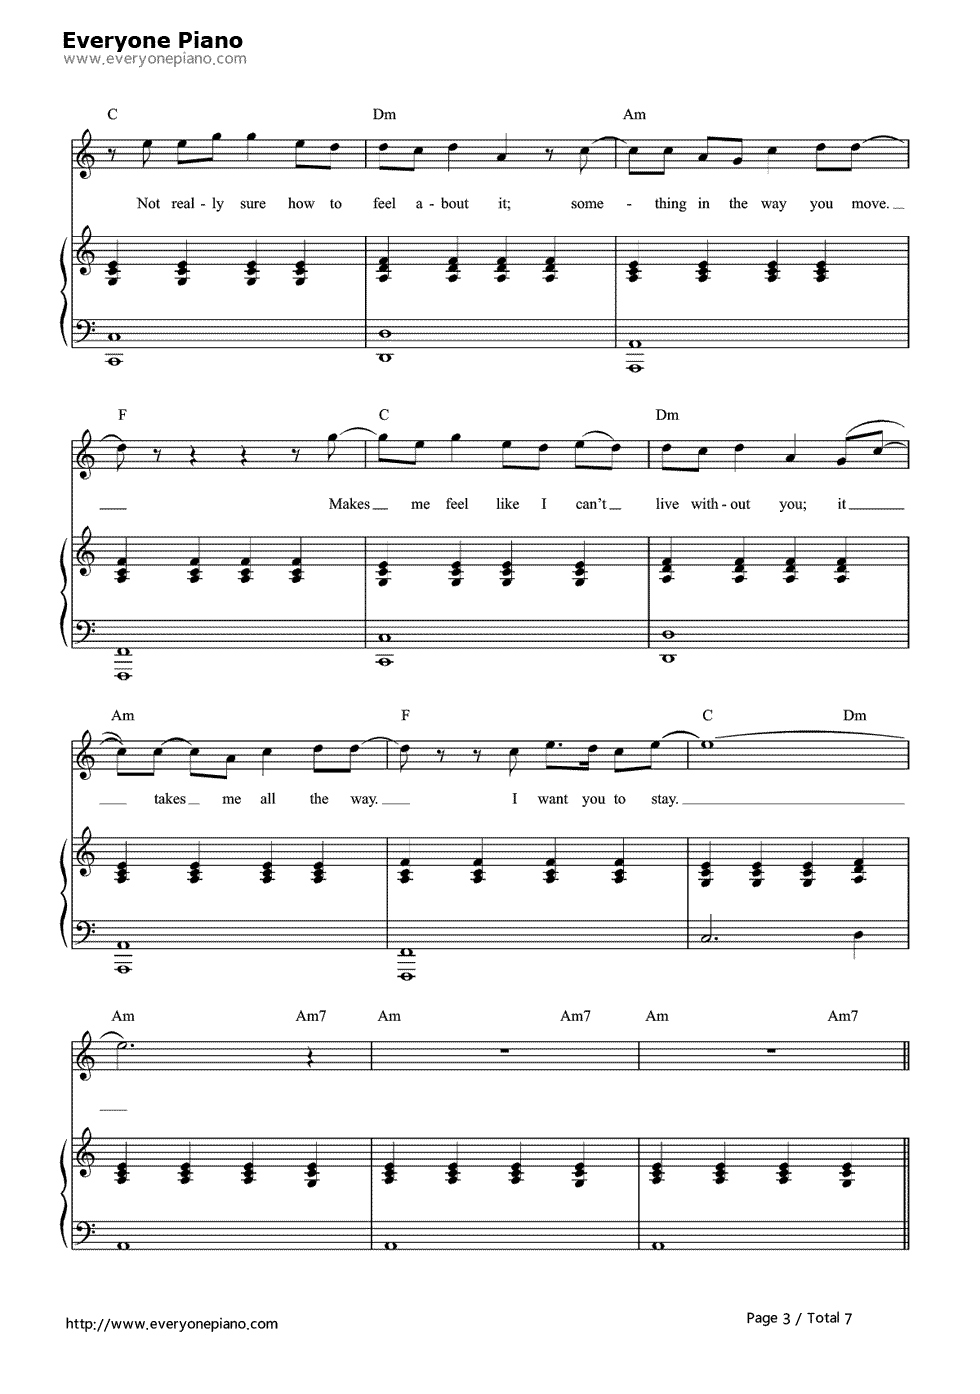 Free Stay Rihanna And Mikky Ekko Sheet Music Preview 3 Page 3